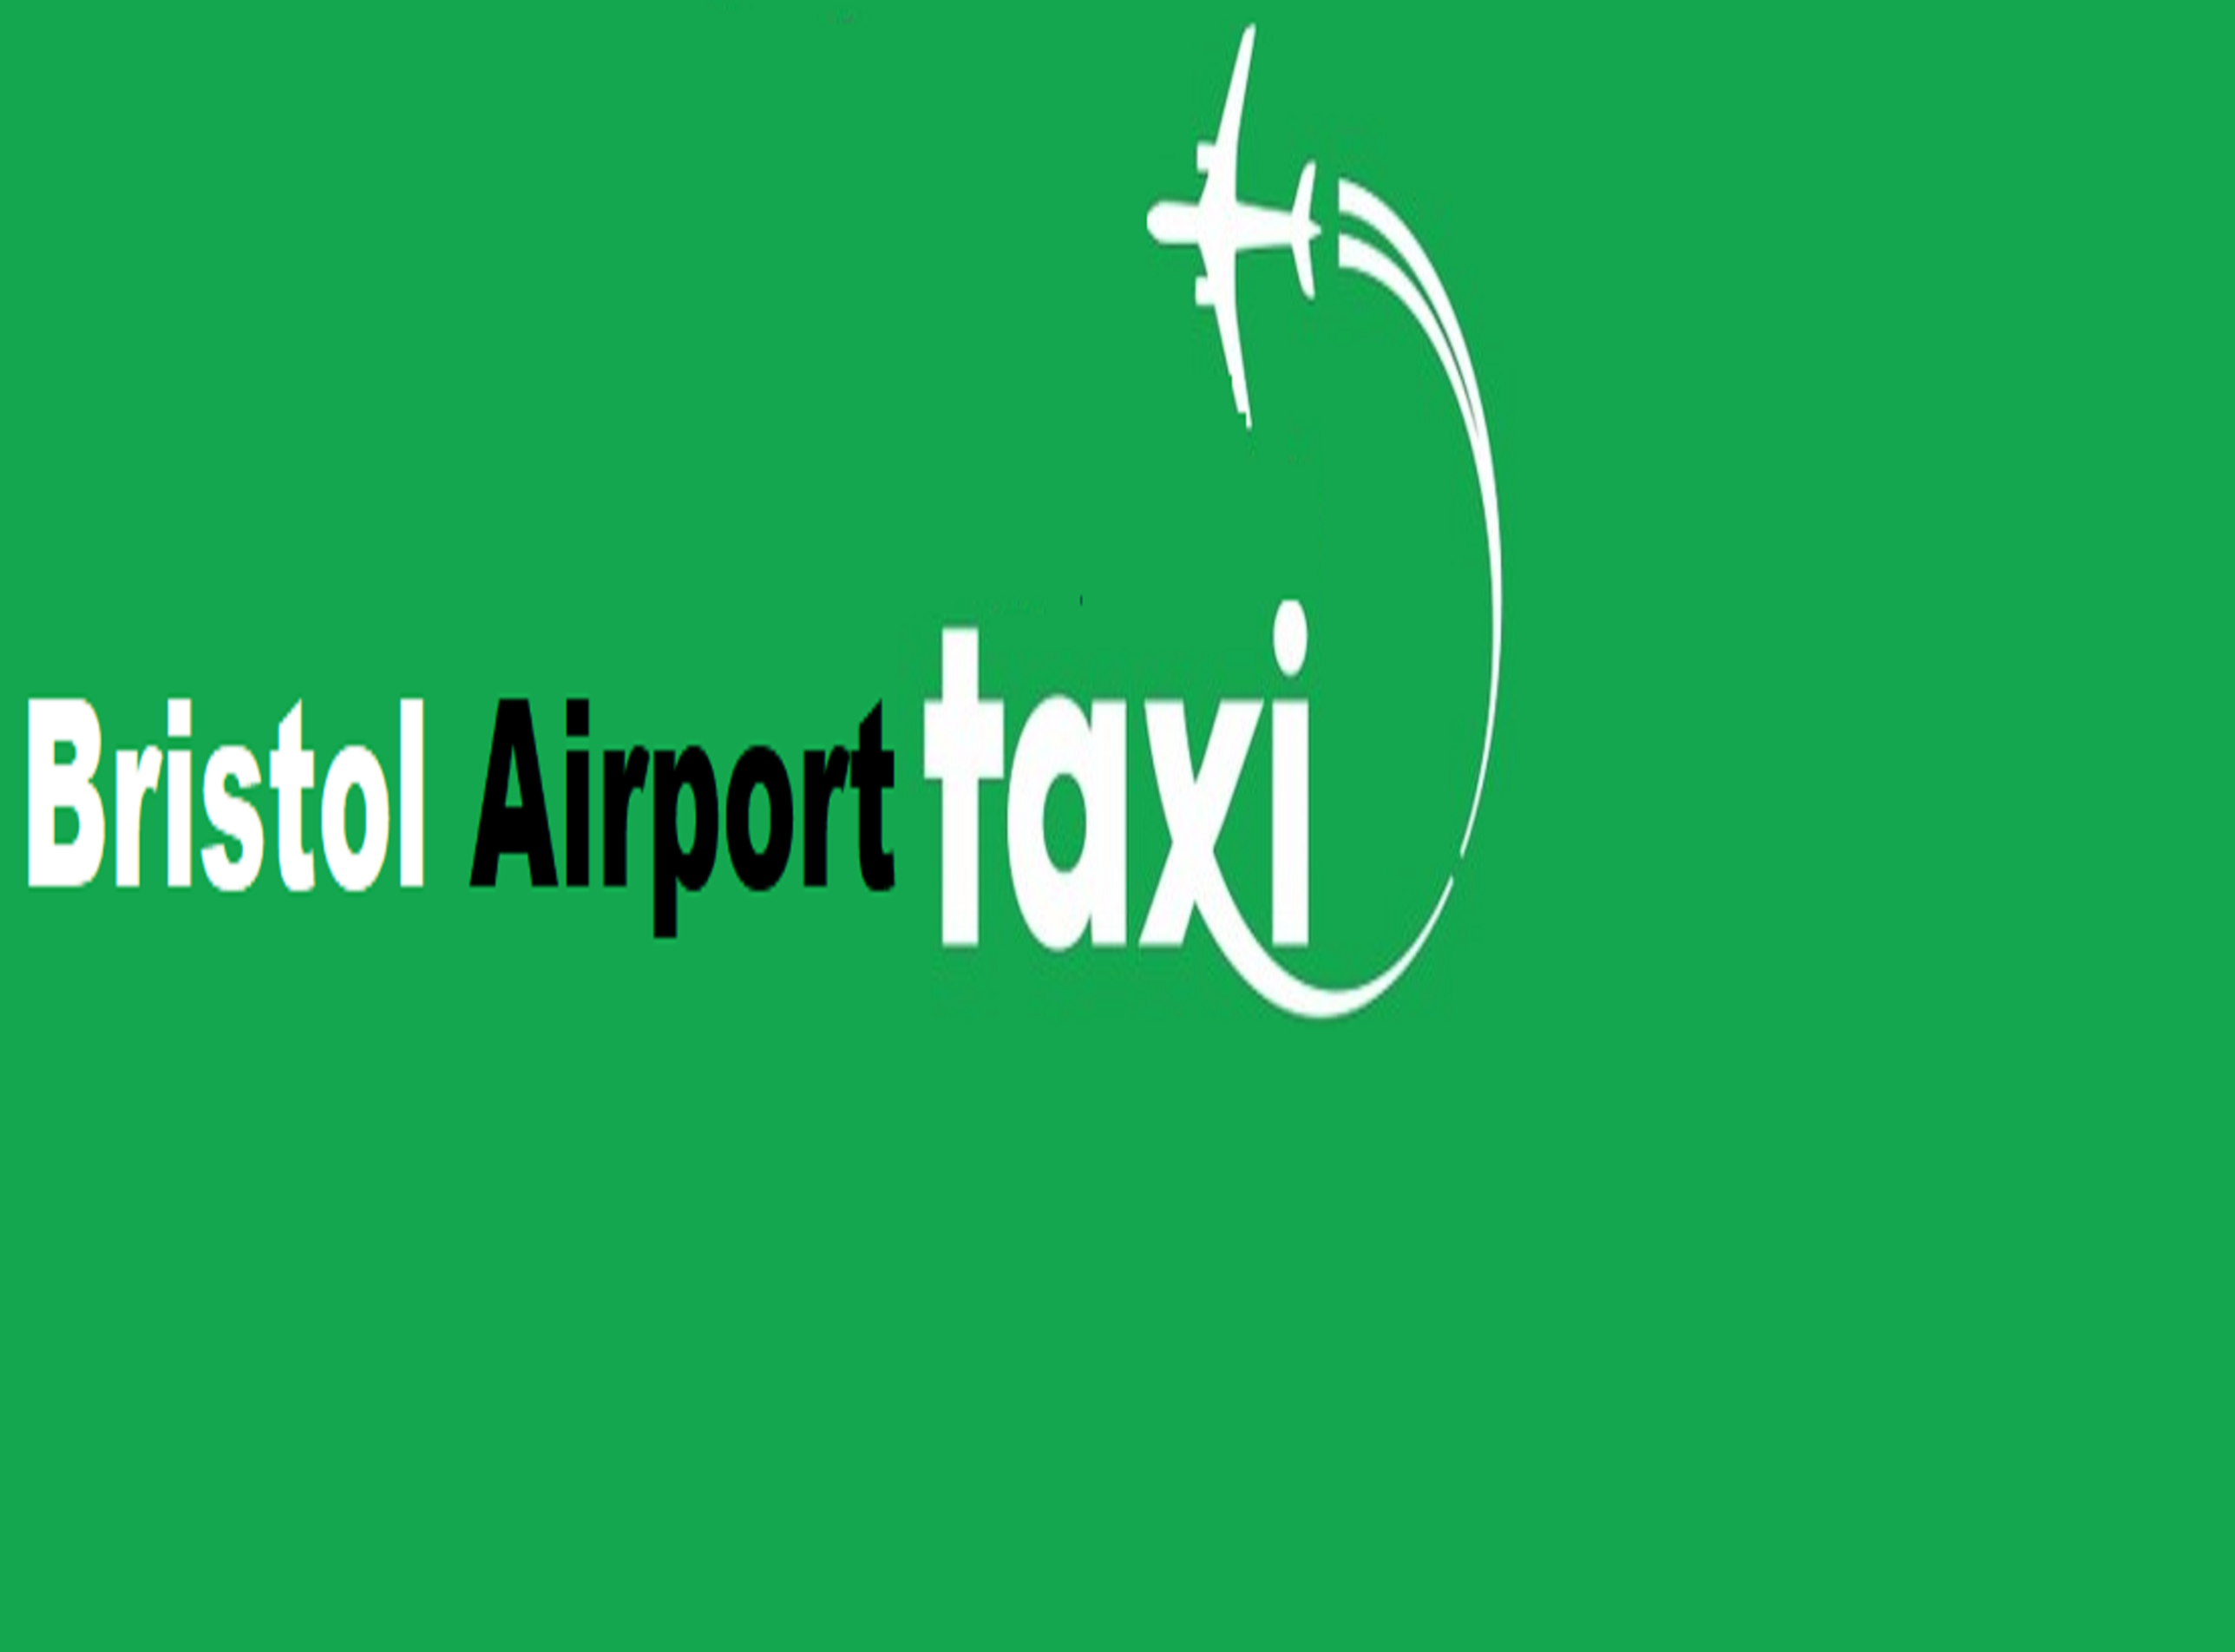 bristol-airport-taxi-logo-5.png